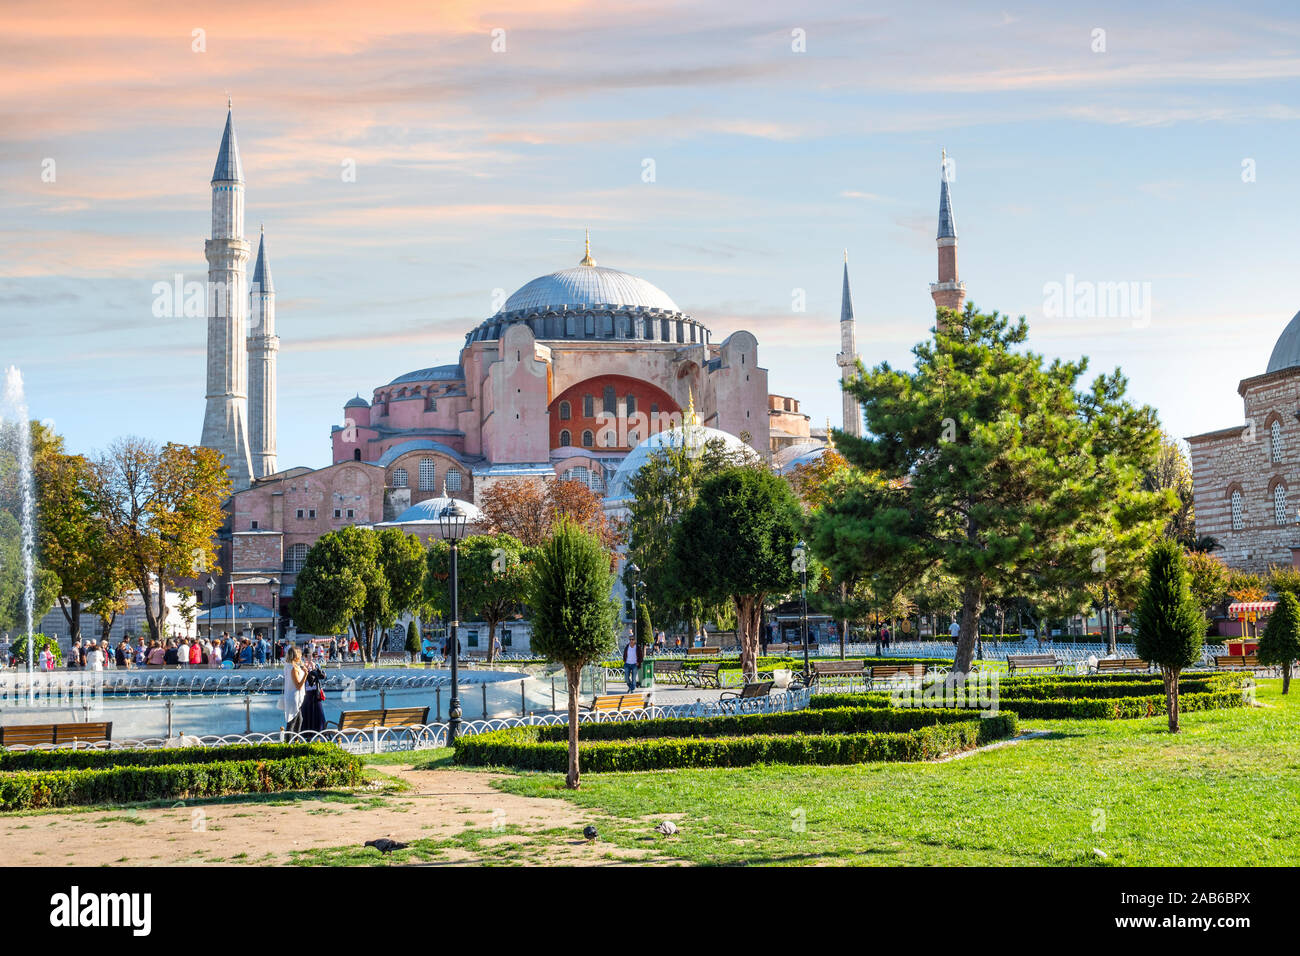 Tourists enjoy afternoon in Sultanahmet Square with the Hagia Sophia museum mosque in view in Istanbul, Turkey. Stock Photo